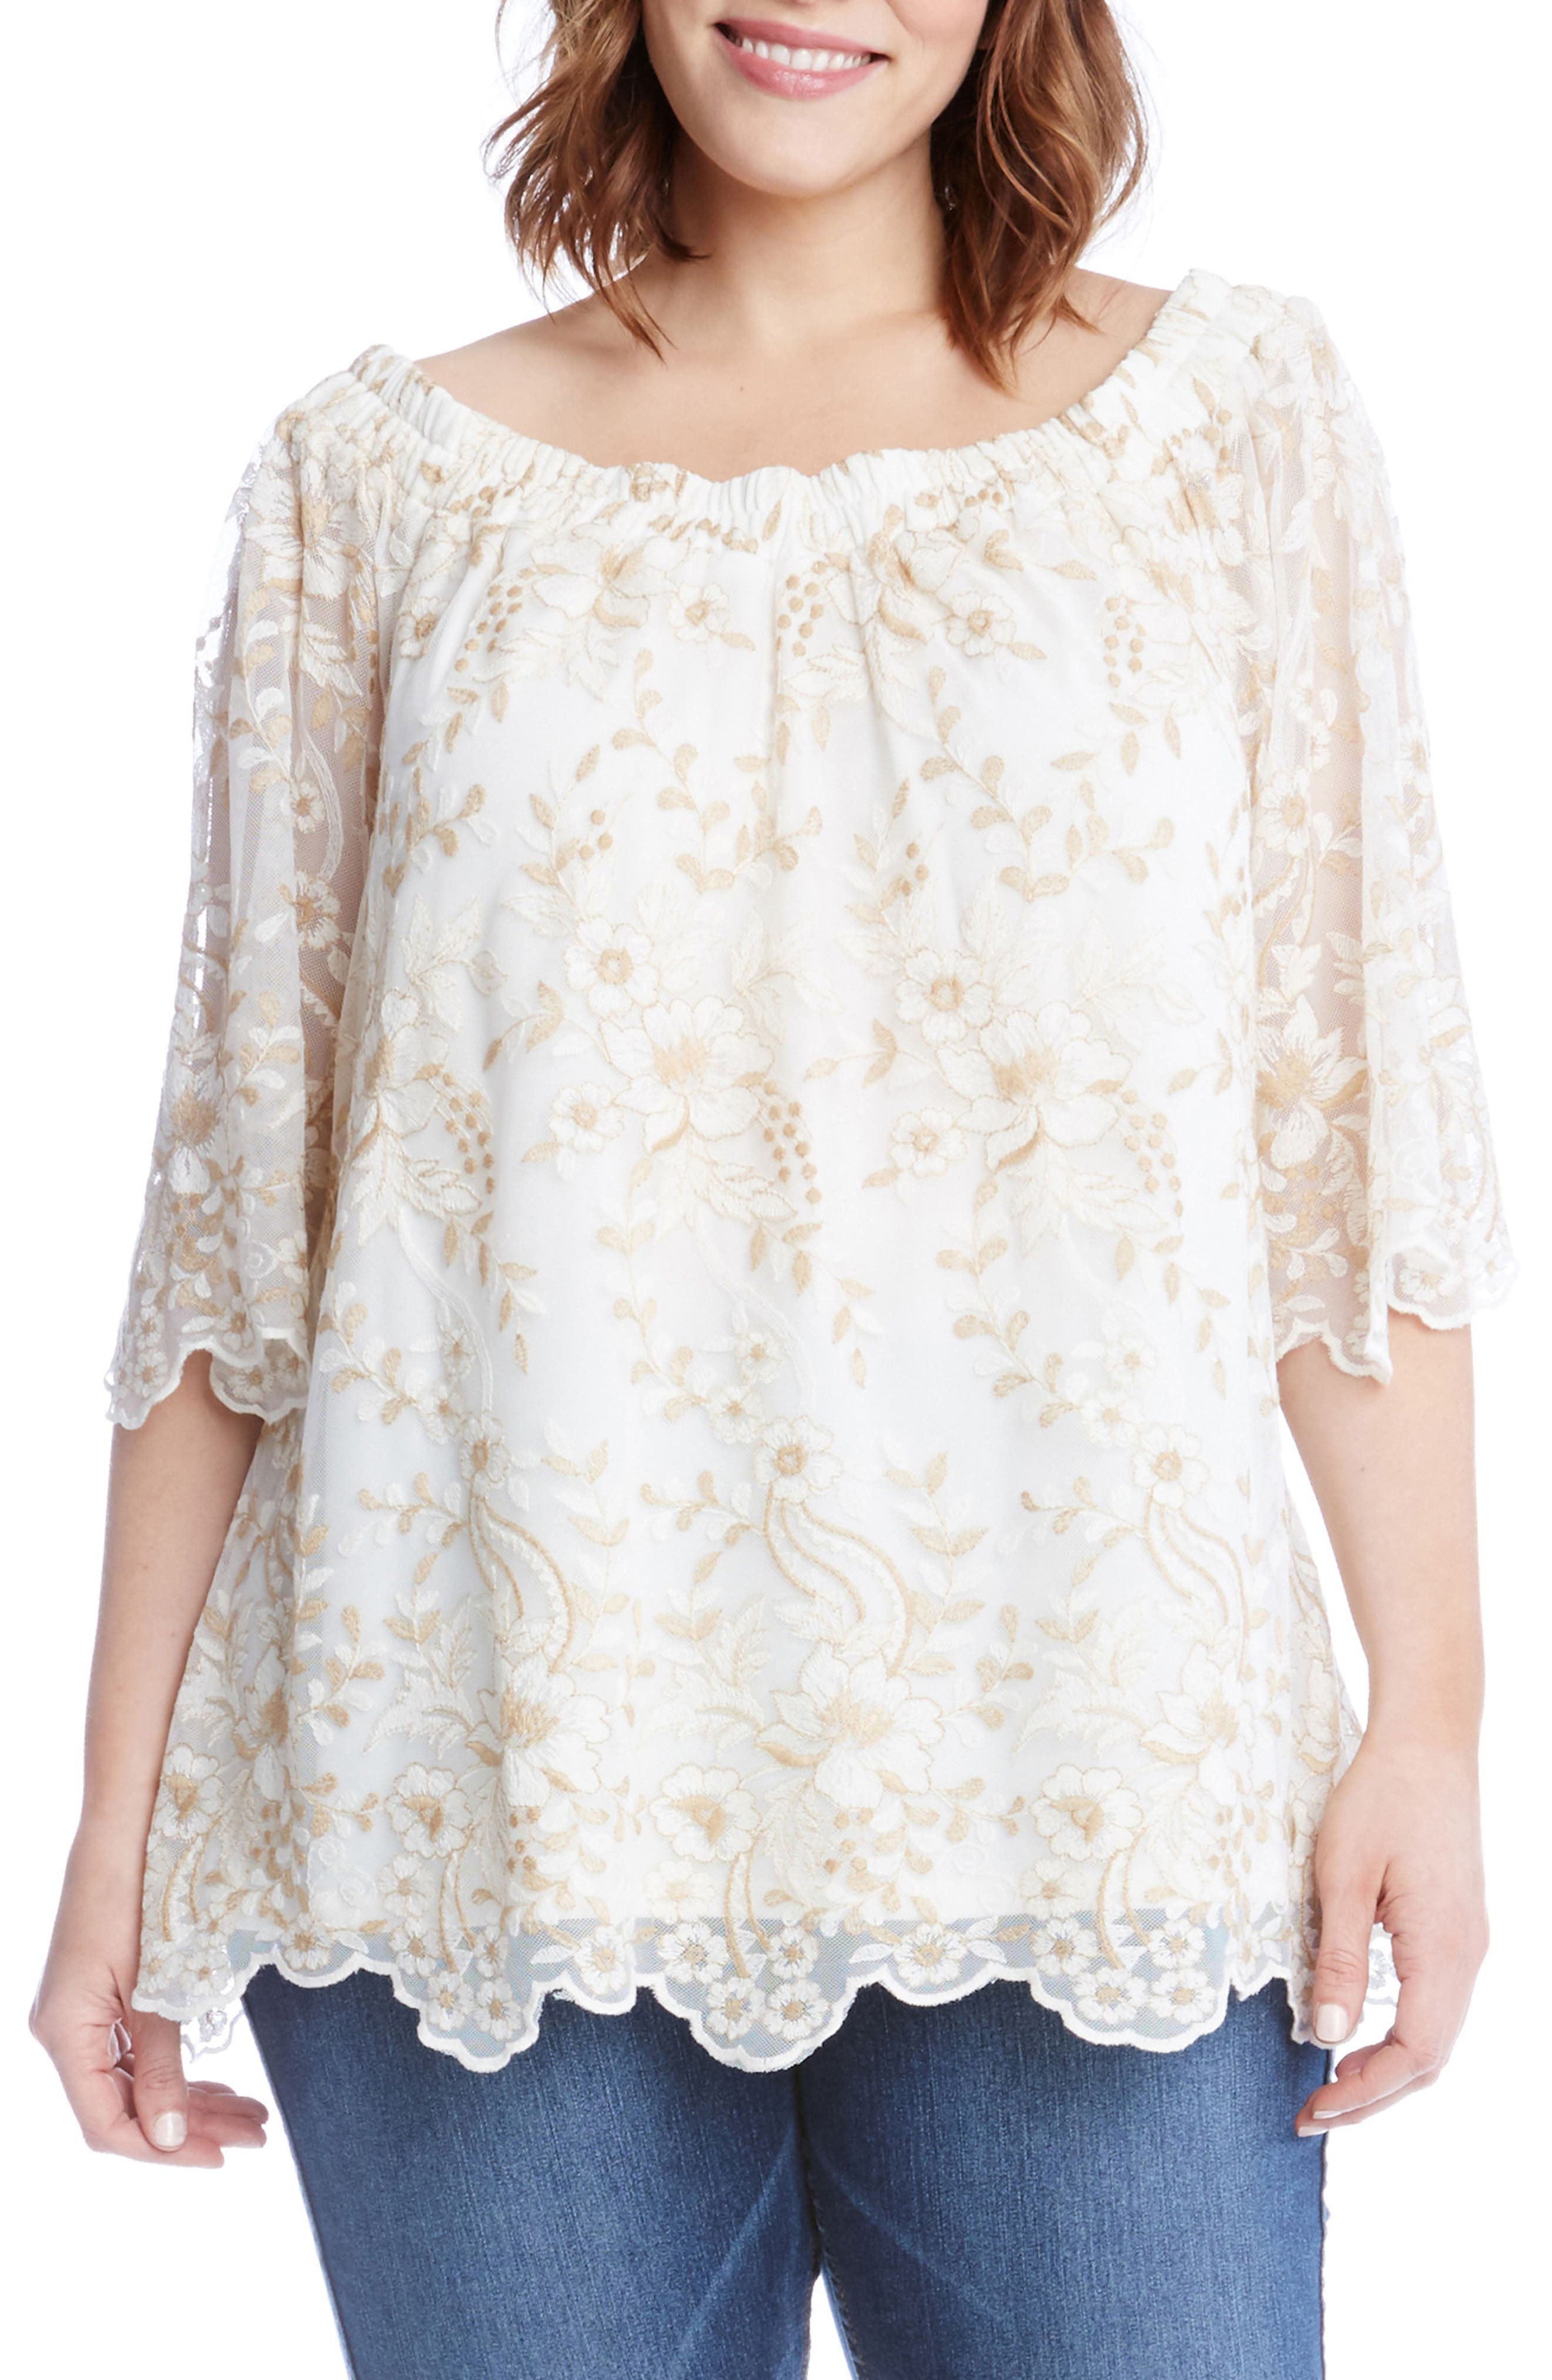 Alternate Image 1 Selected - Karen Kane Embroidered Mesh Off the Shoulder Top (Plus Size)